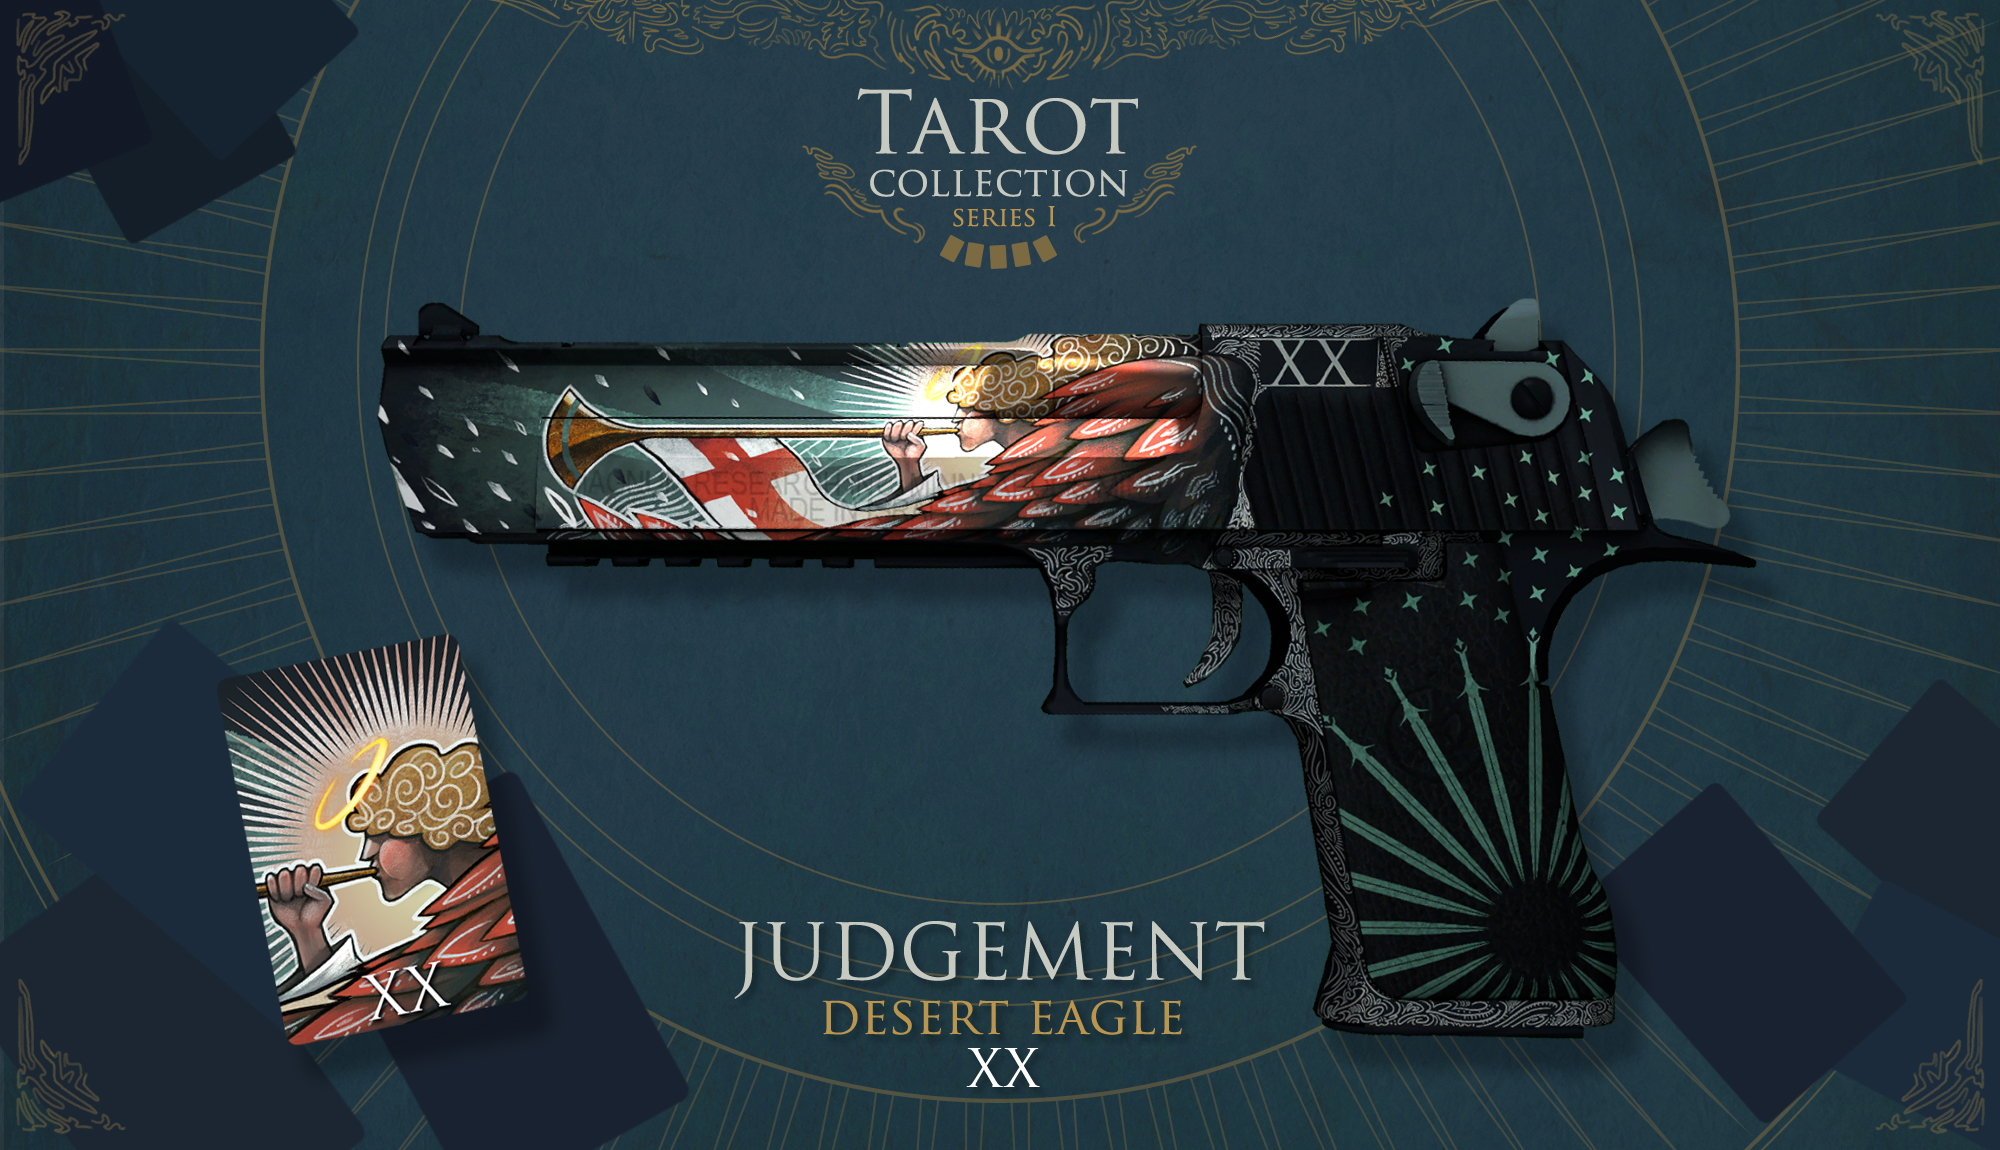 5 best desert eagle skins judgement 3